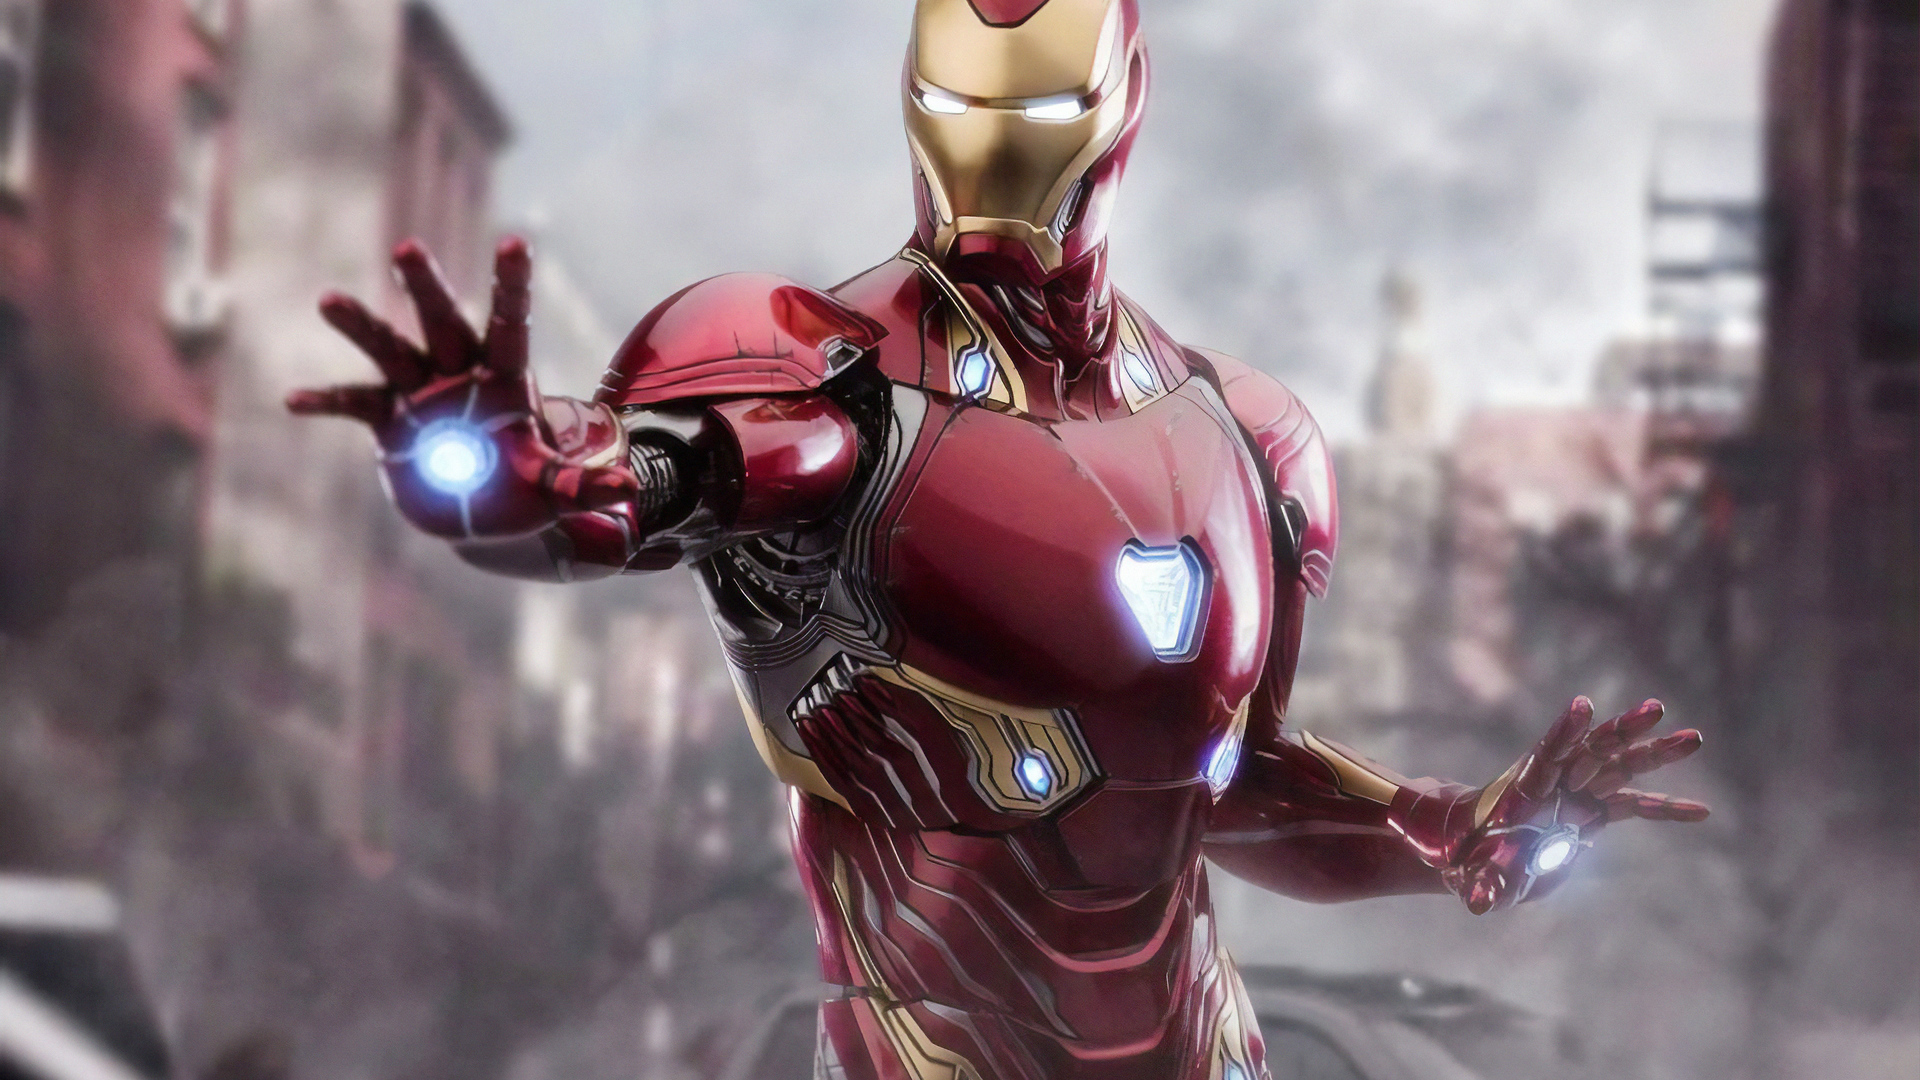 1920x1080 4k Iron Man Endgame Laptop Full Hd 1080p Hd 4k